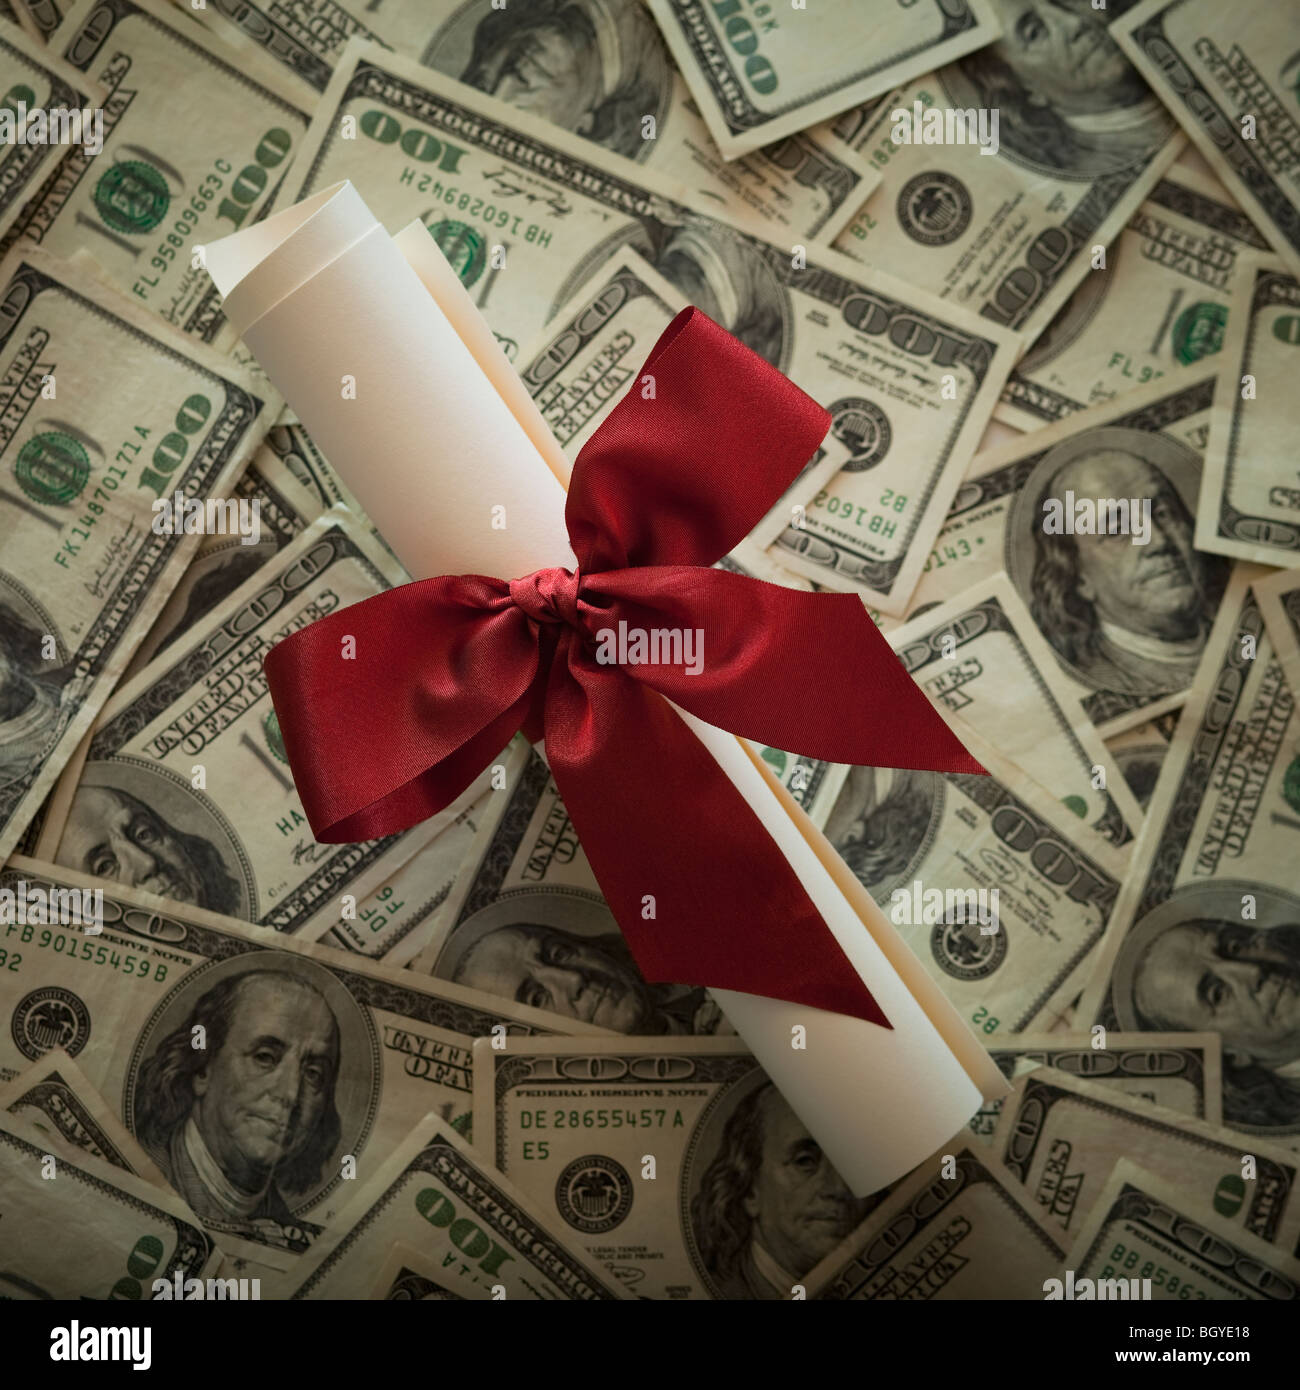 Diploma and money - Stock Image